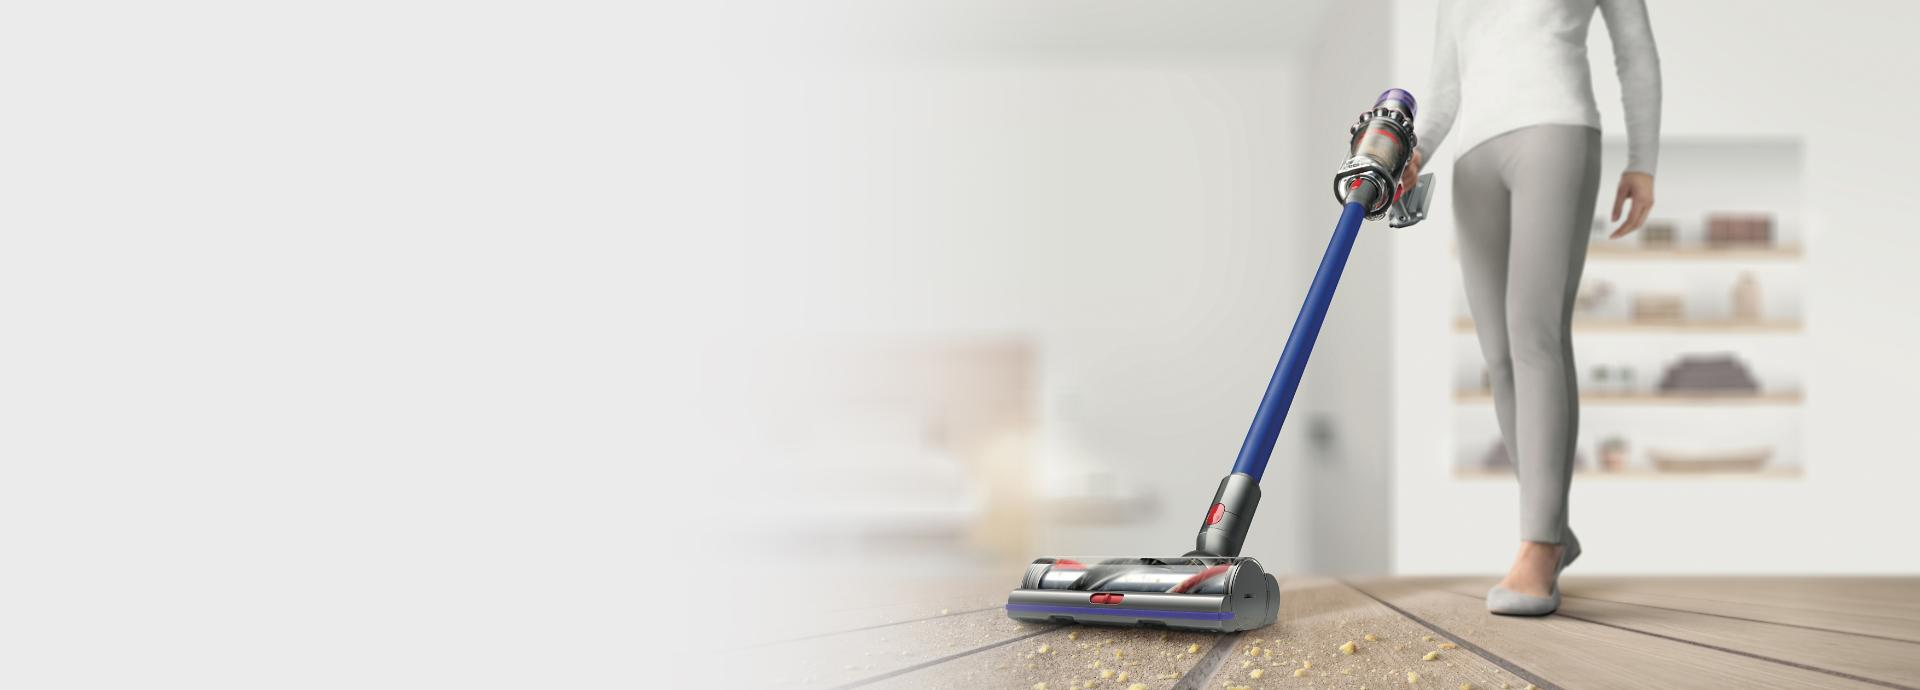 Dyson V11 vaccum cleaner lifting dirt from floor